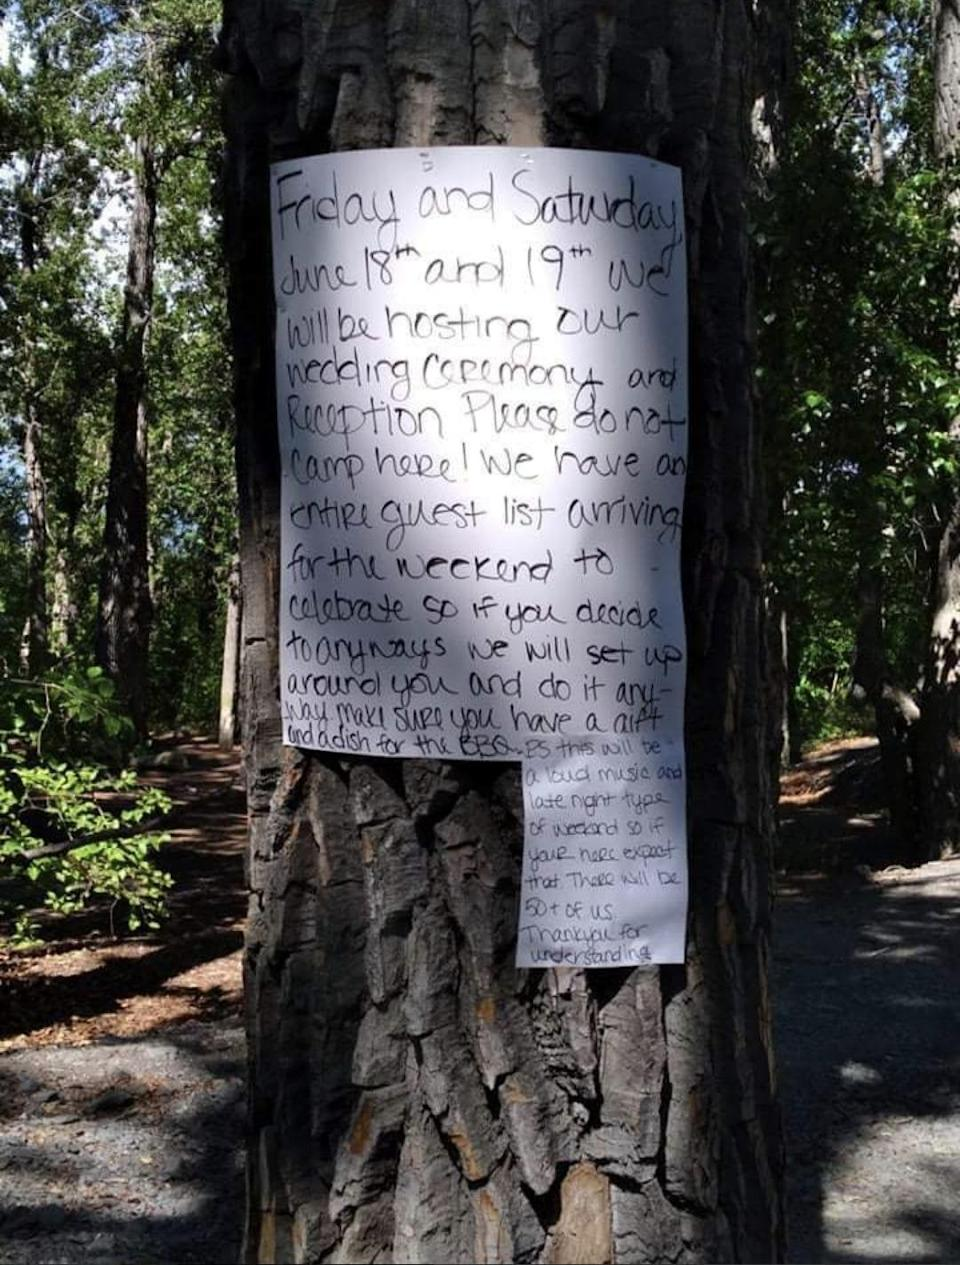 Note on tree about party